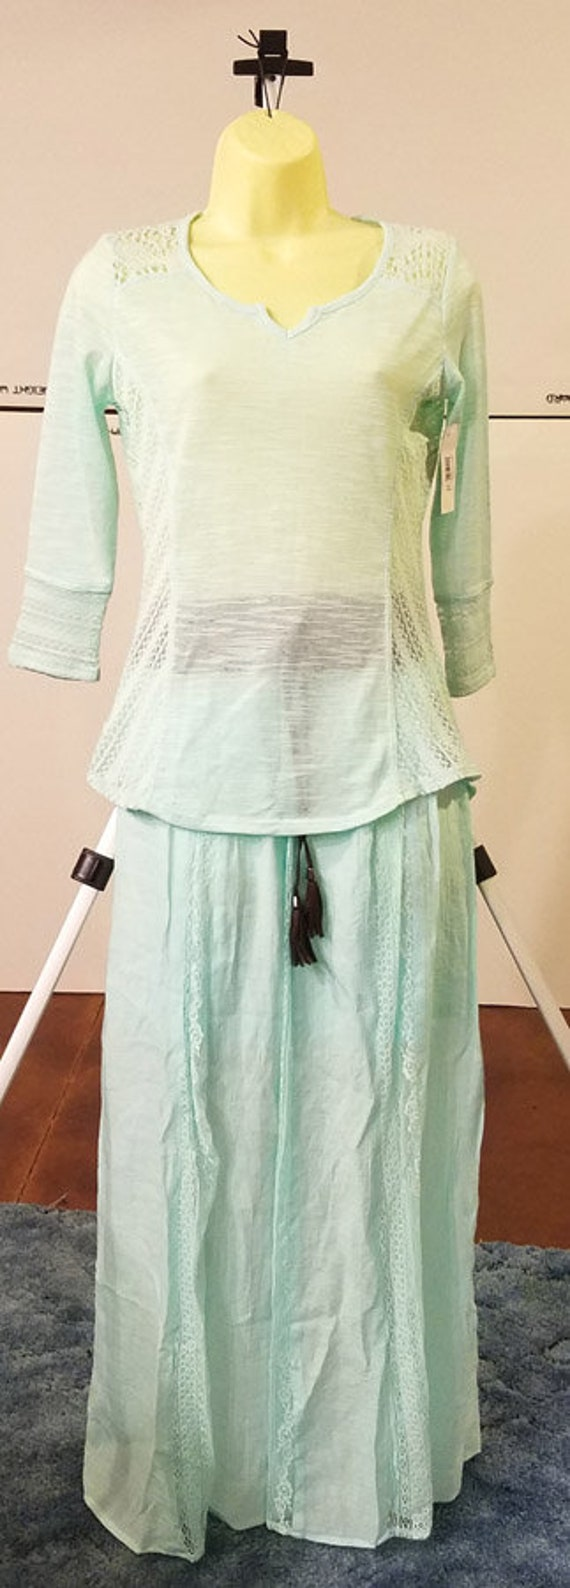 2 light blue lace blouse long skirt lace belt outfit size small MED womens boho clothes lot